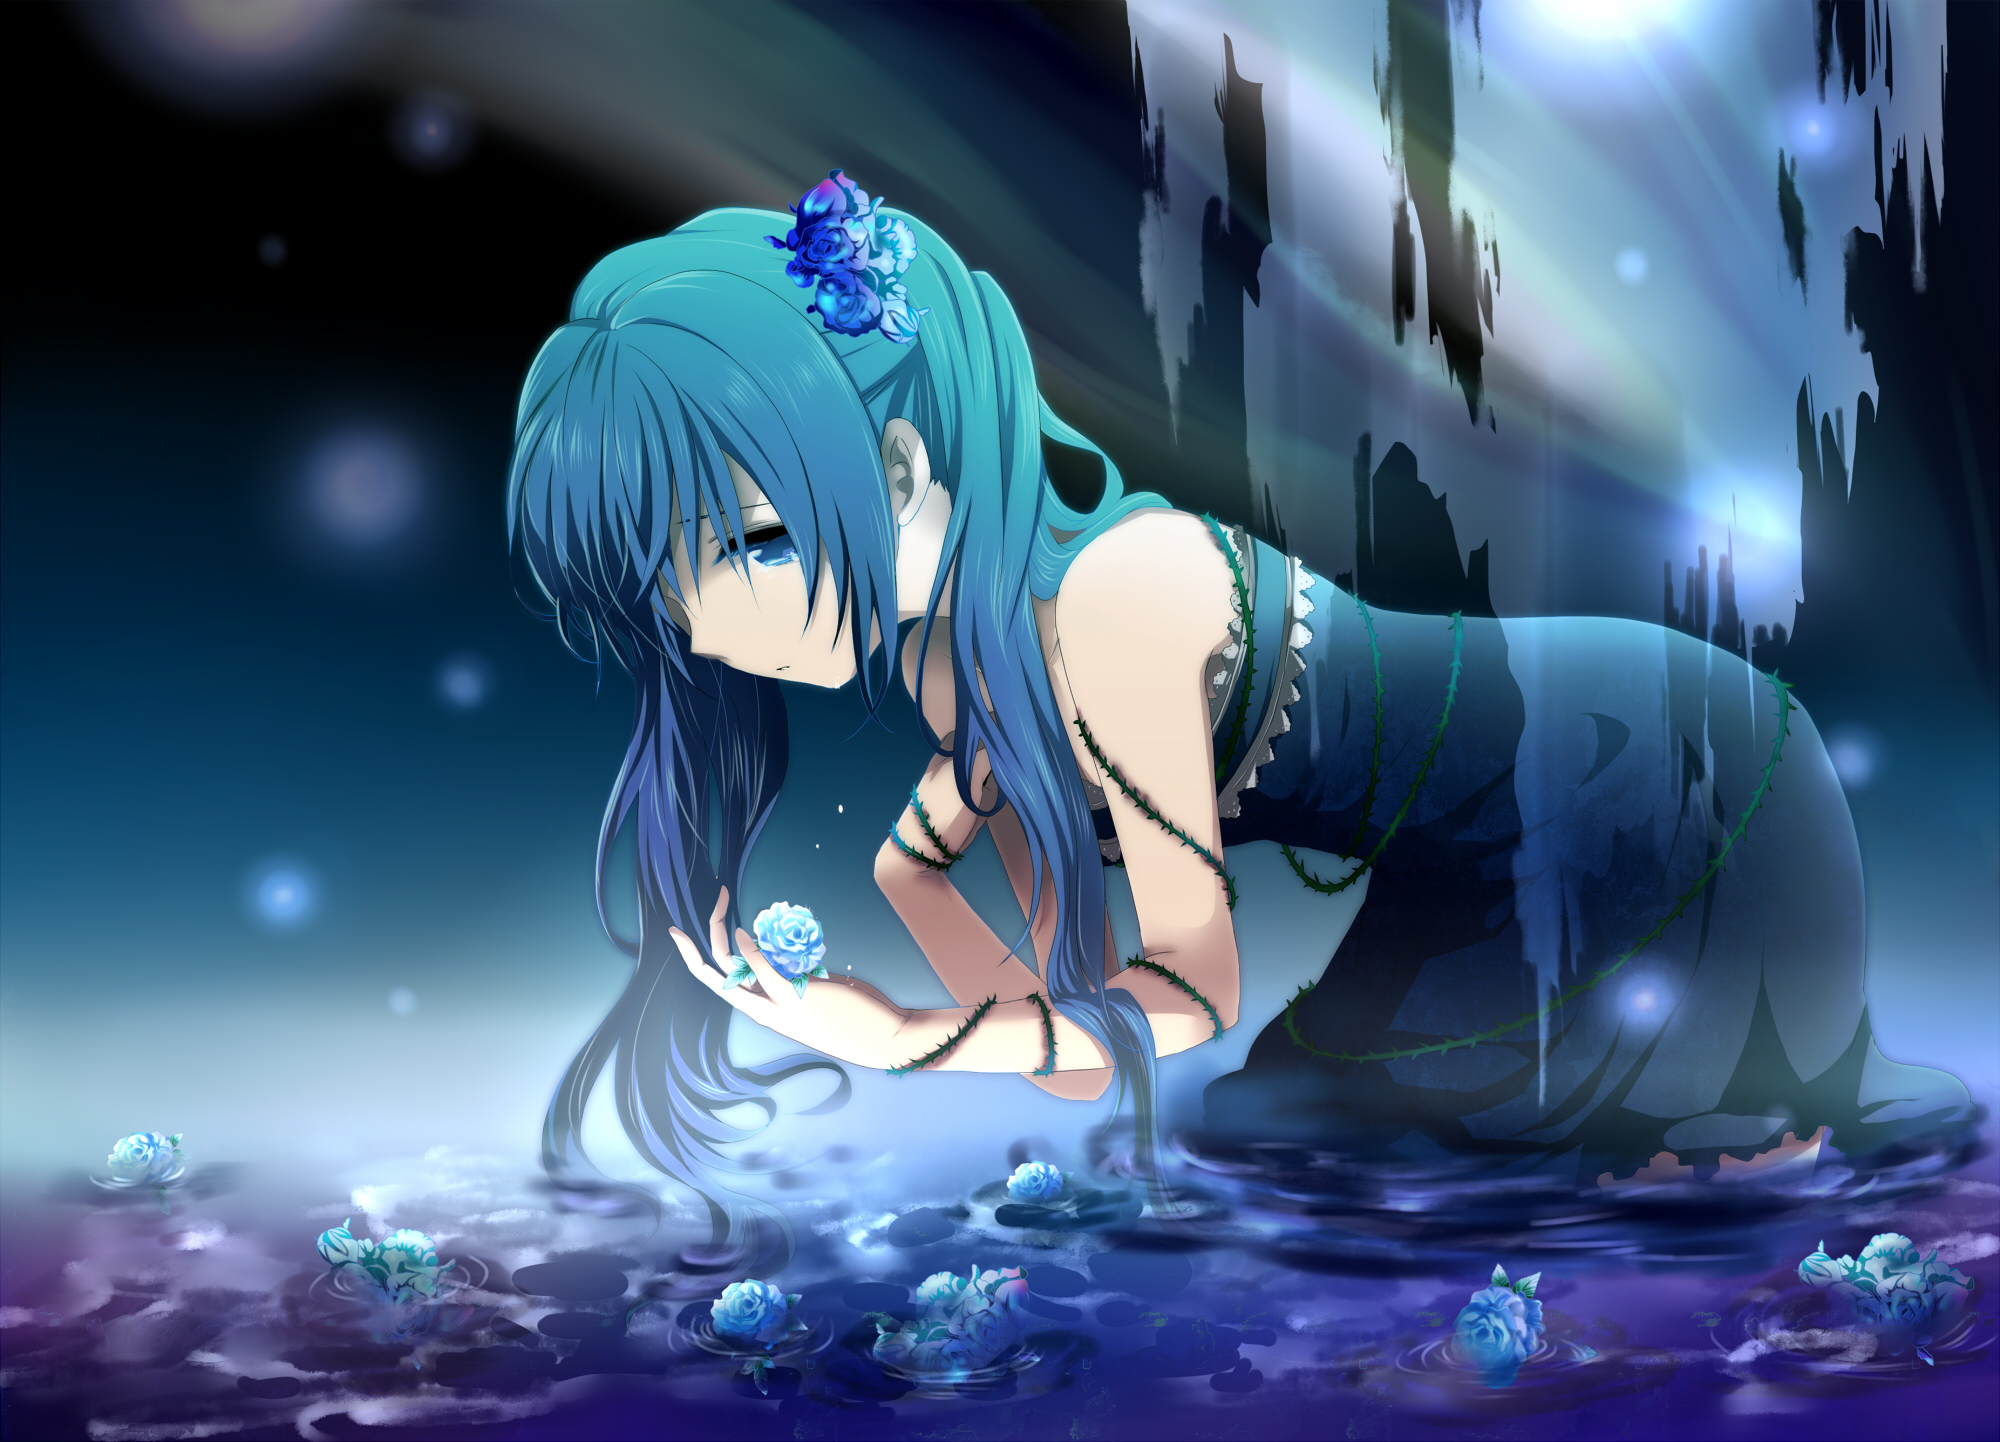 Sad vocaloid page 14 zerochan anime image board paranoia song download paranoia song image sciox Choice Image